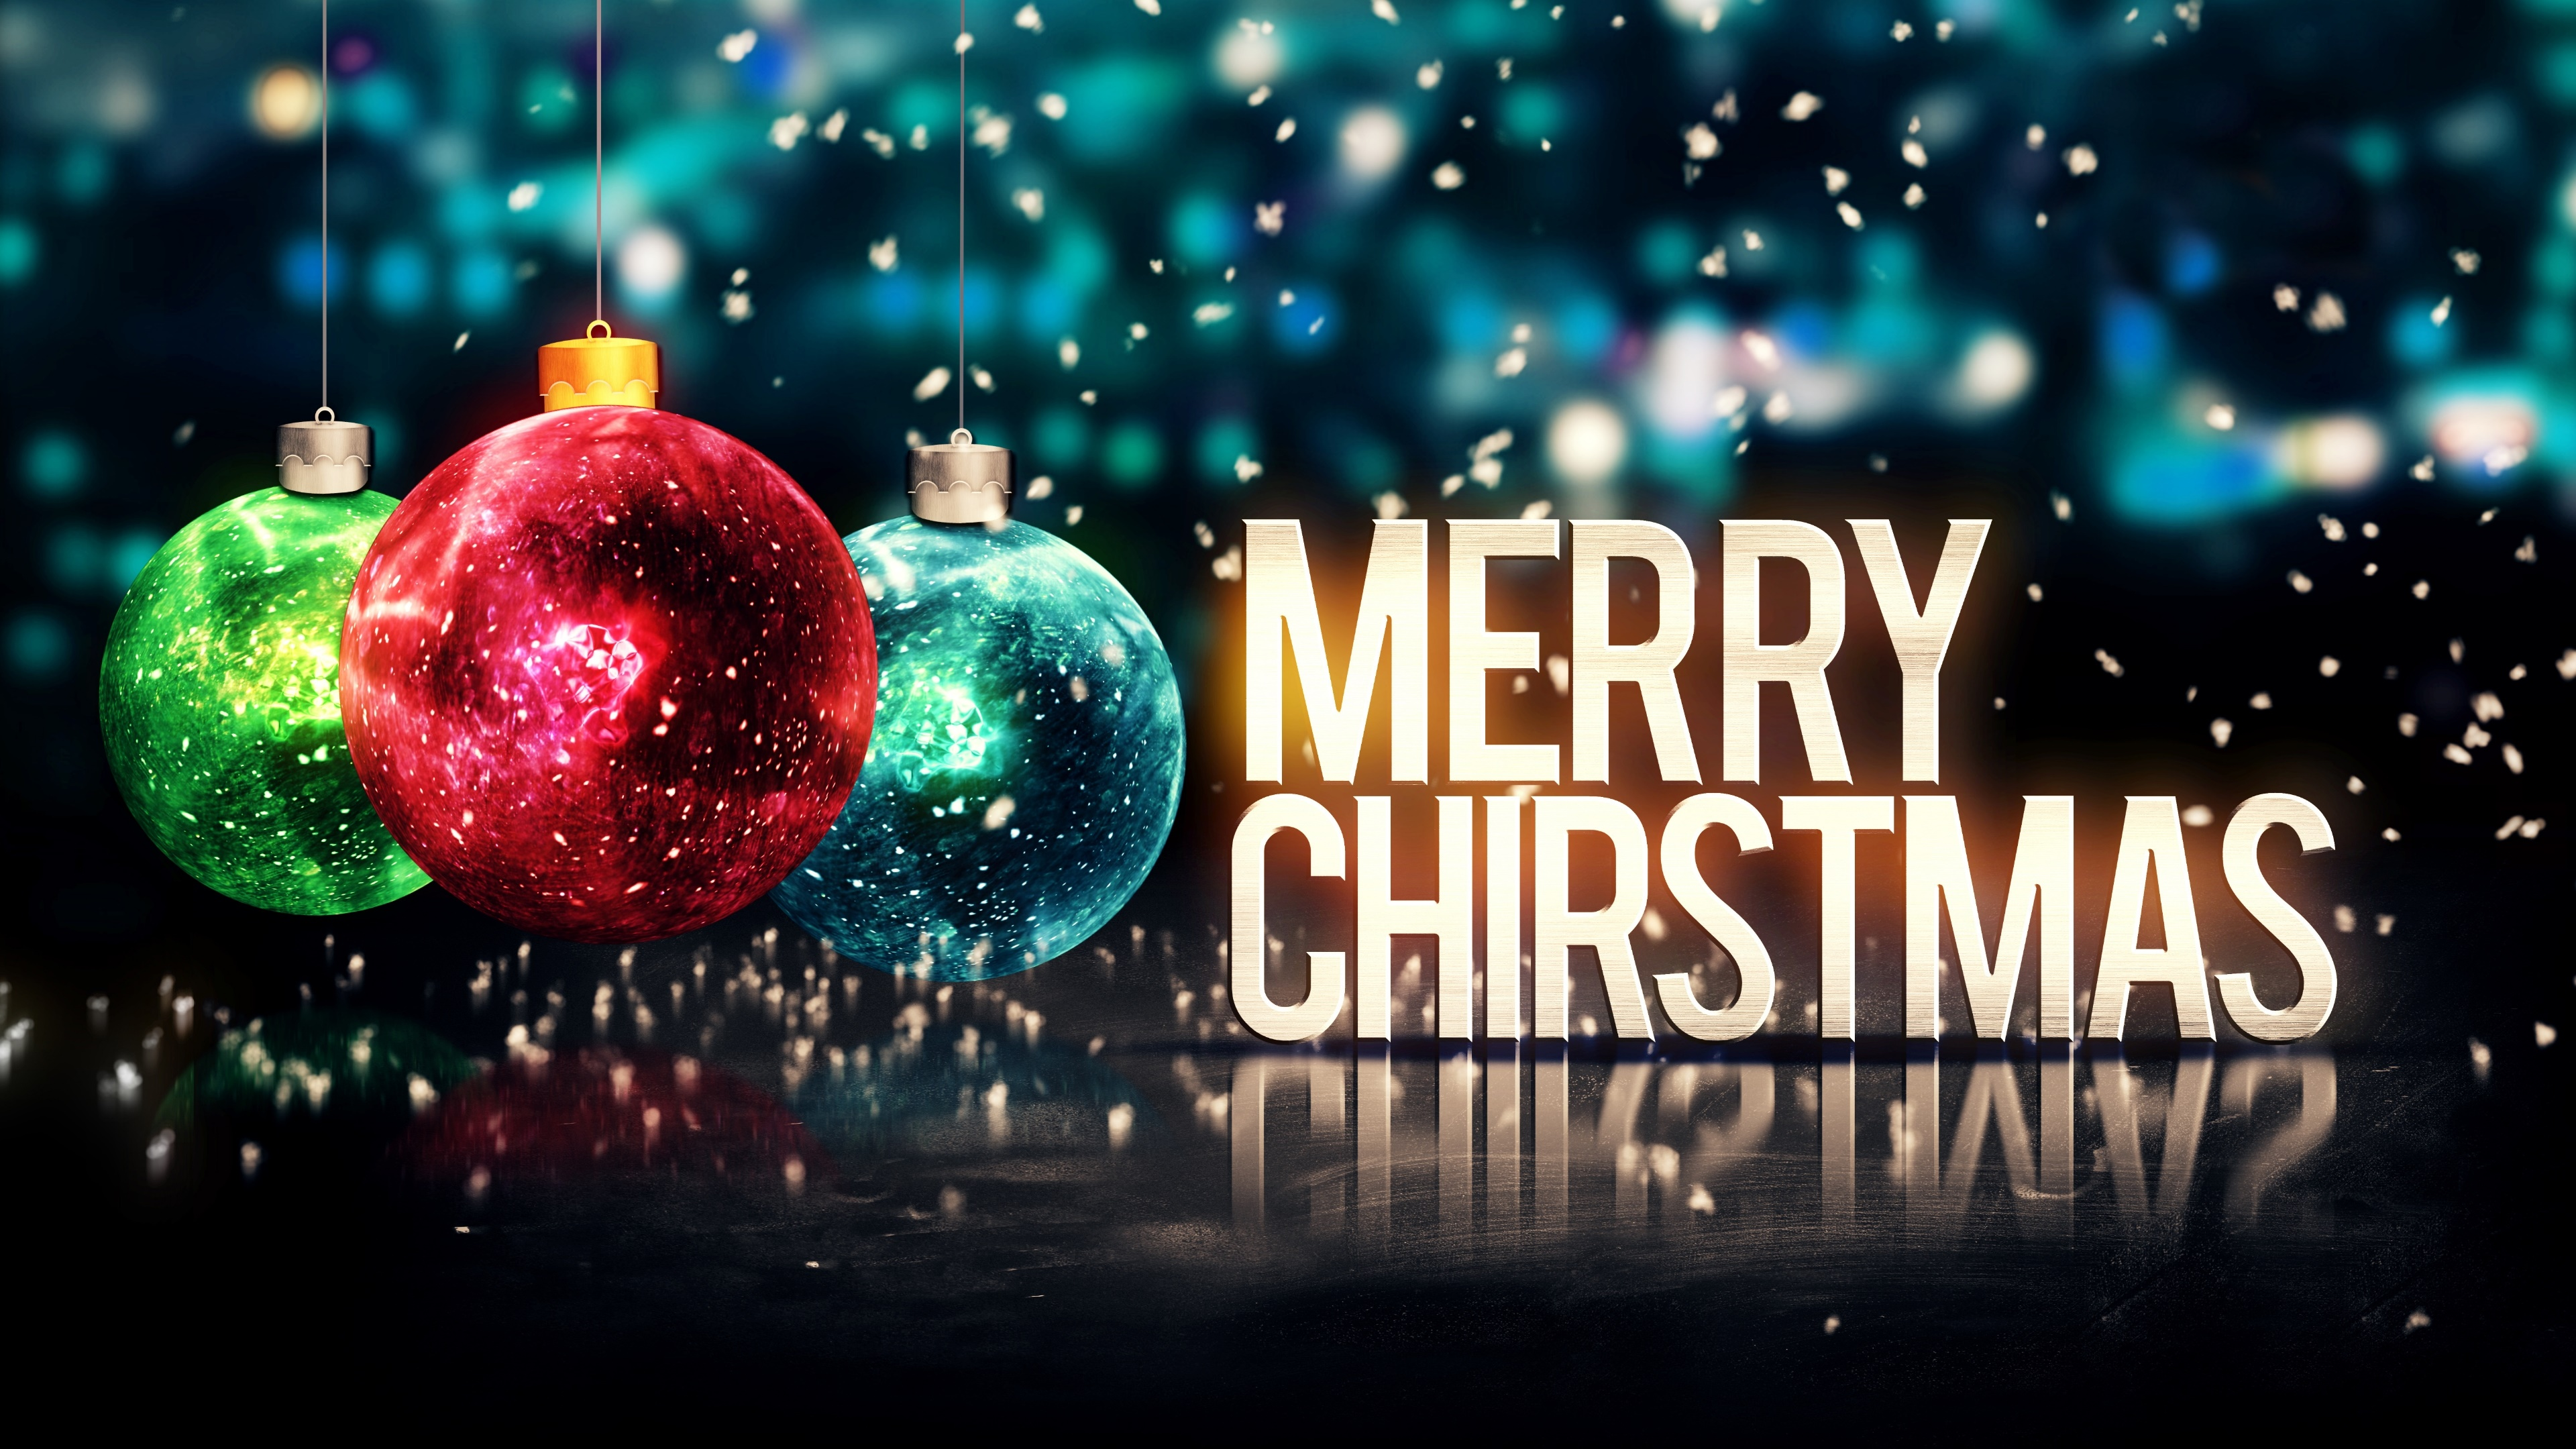 Download Merry Christmas Wallpaper Gallery